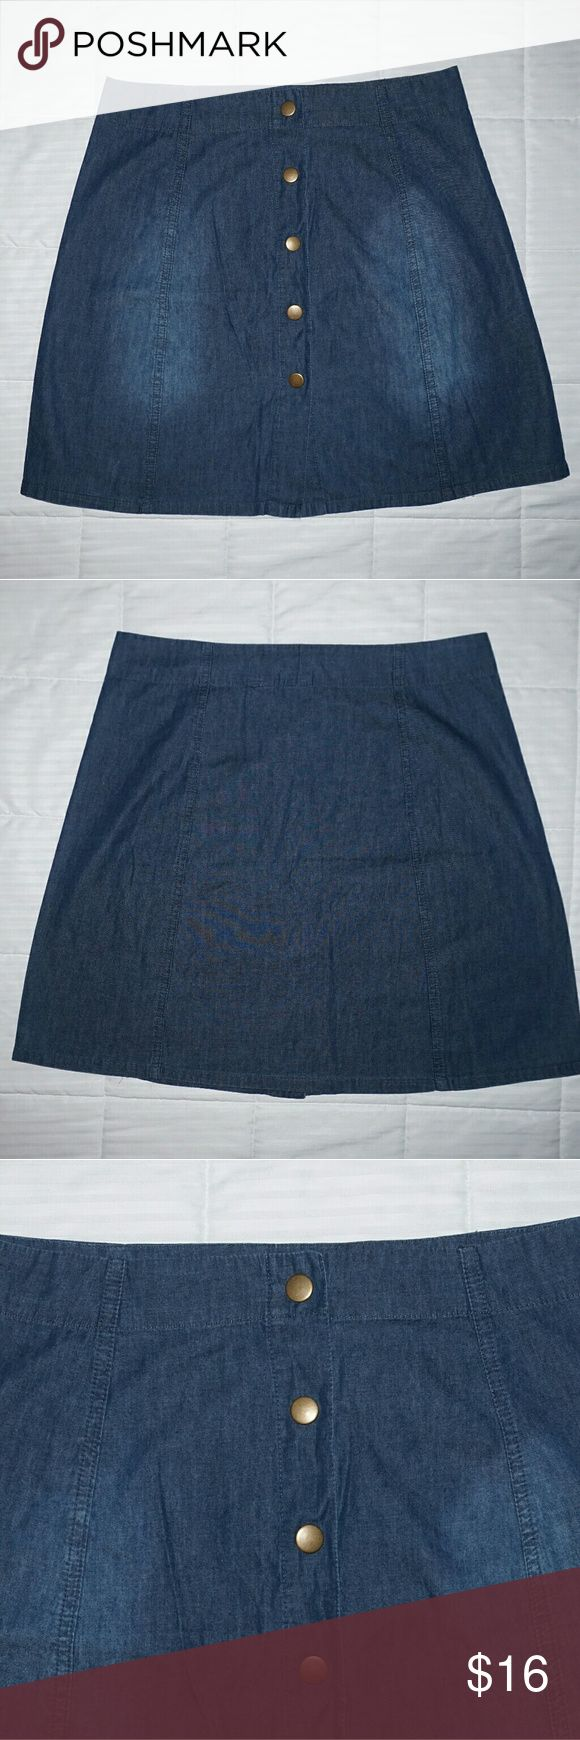 Button up short Jean skirt In great condition Xhilaration Skirts Mini